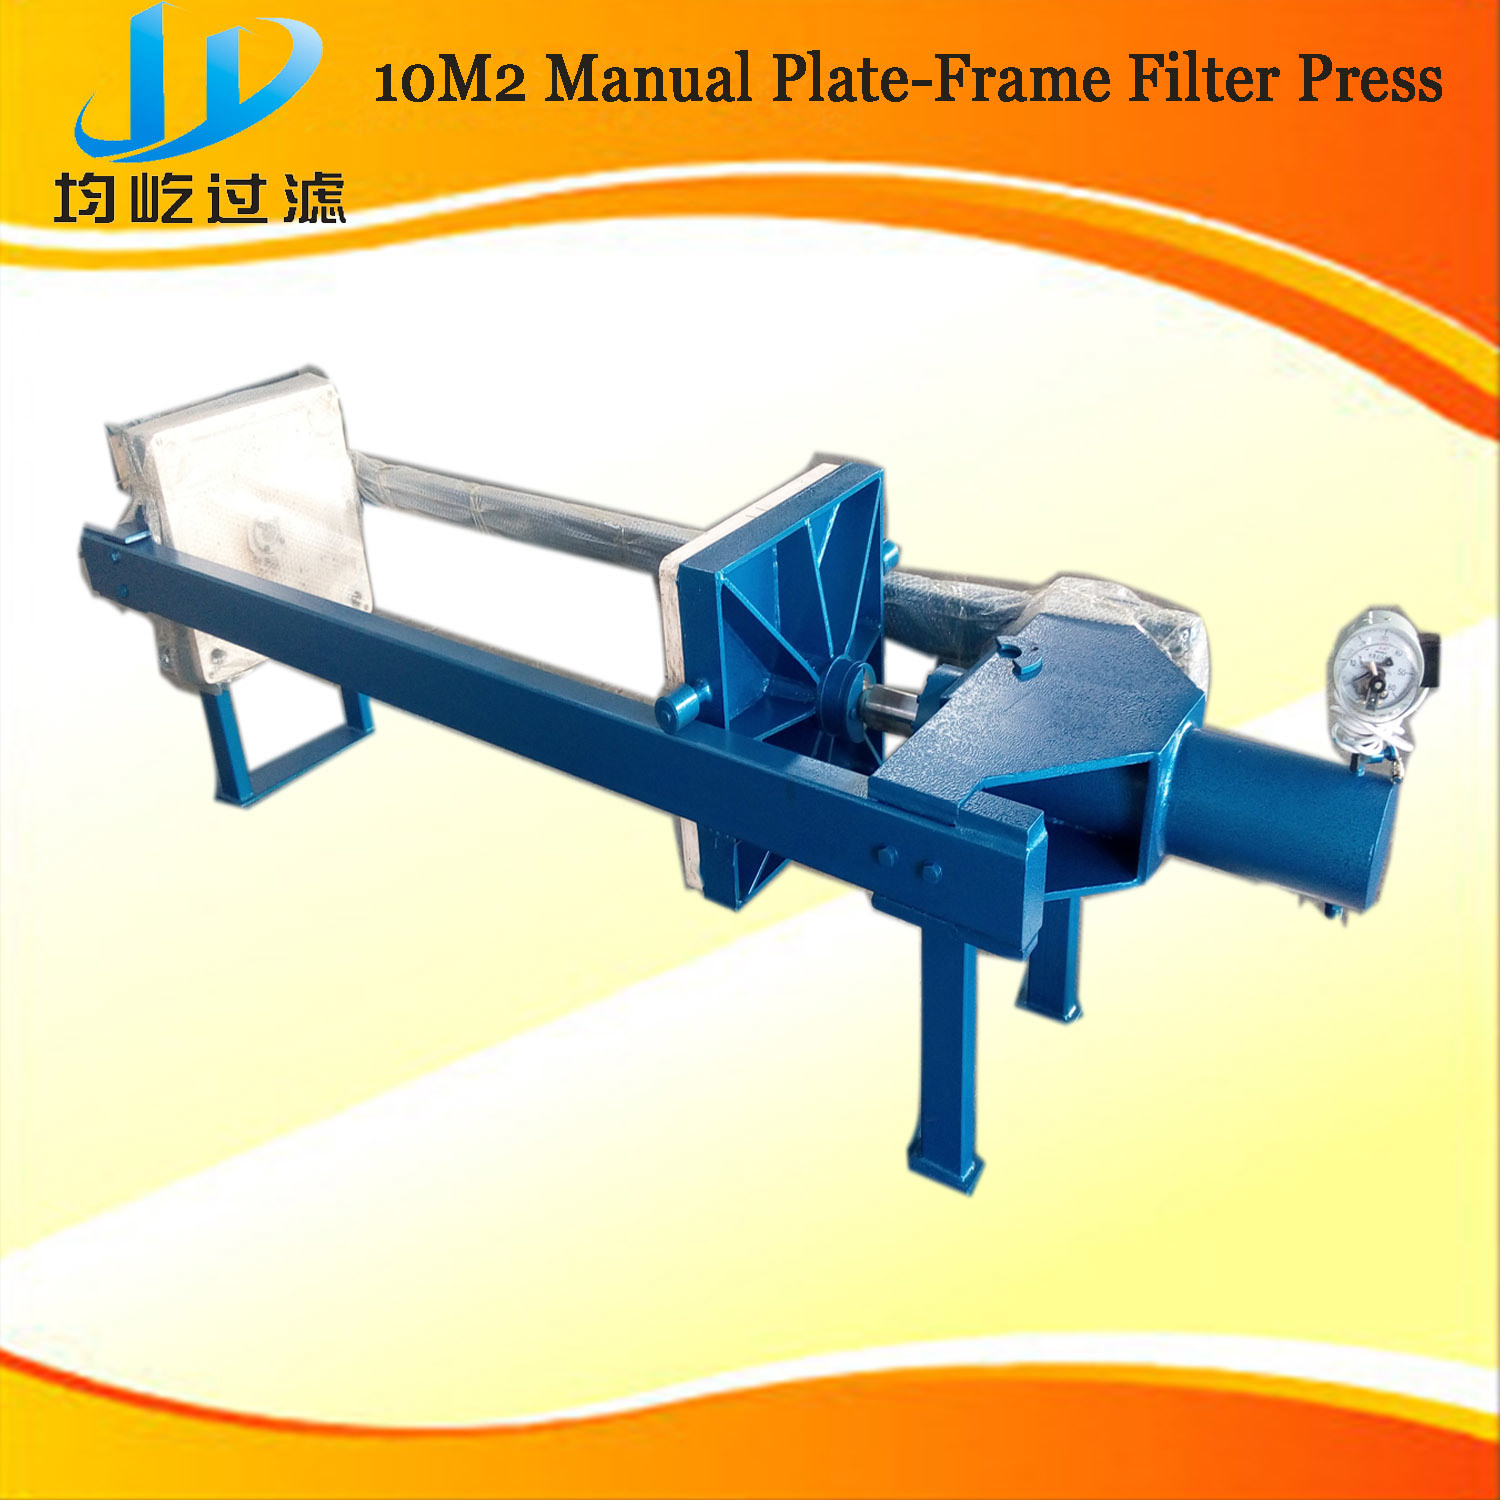 Laboratory Use Small Filter Press Machine for Chemical, Food, Pharmaceutical, Stone Industry Use